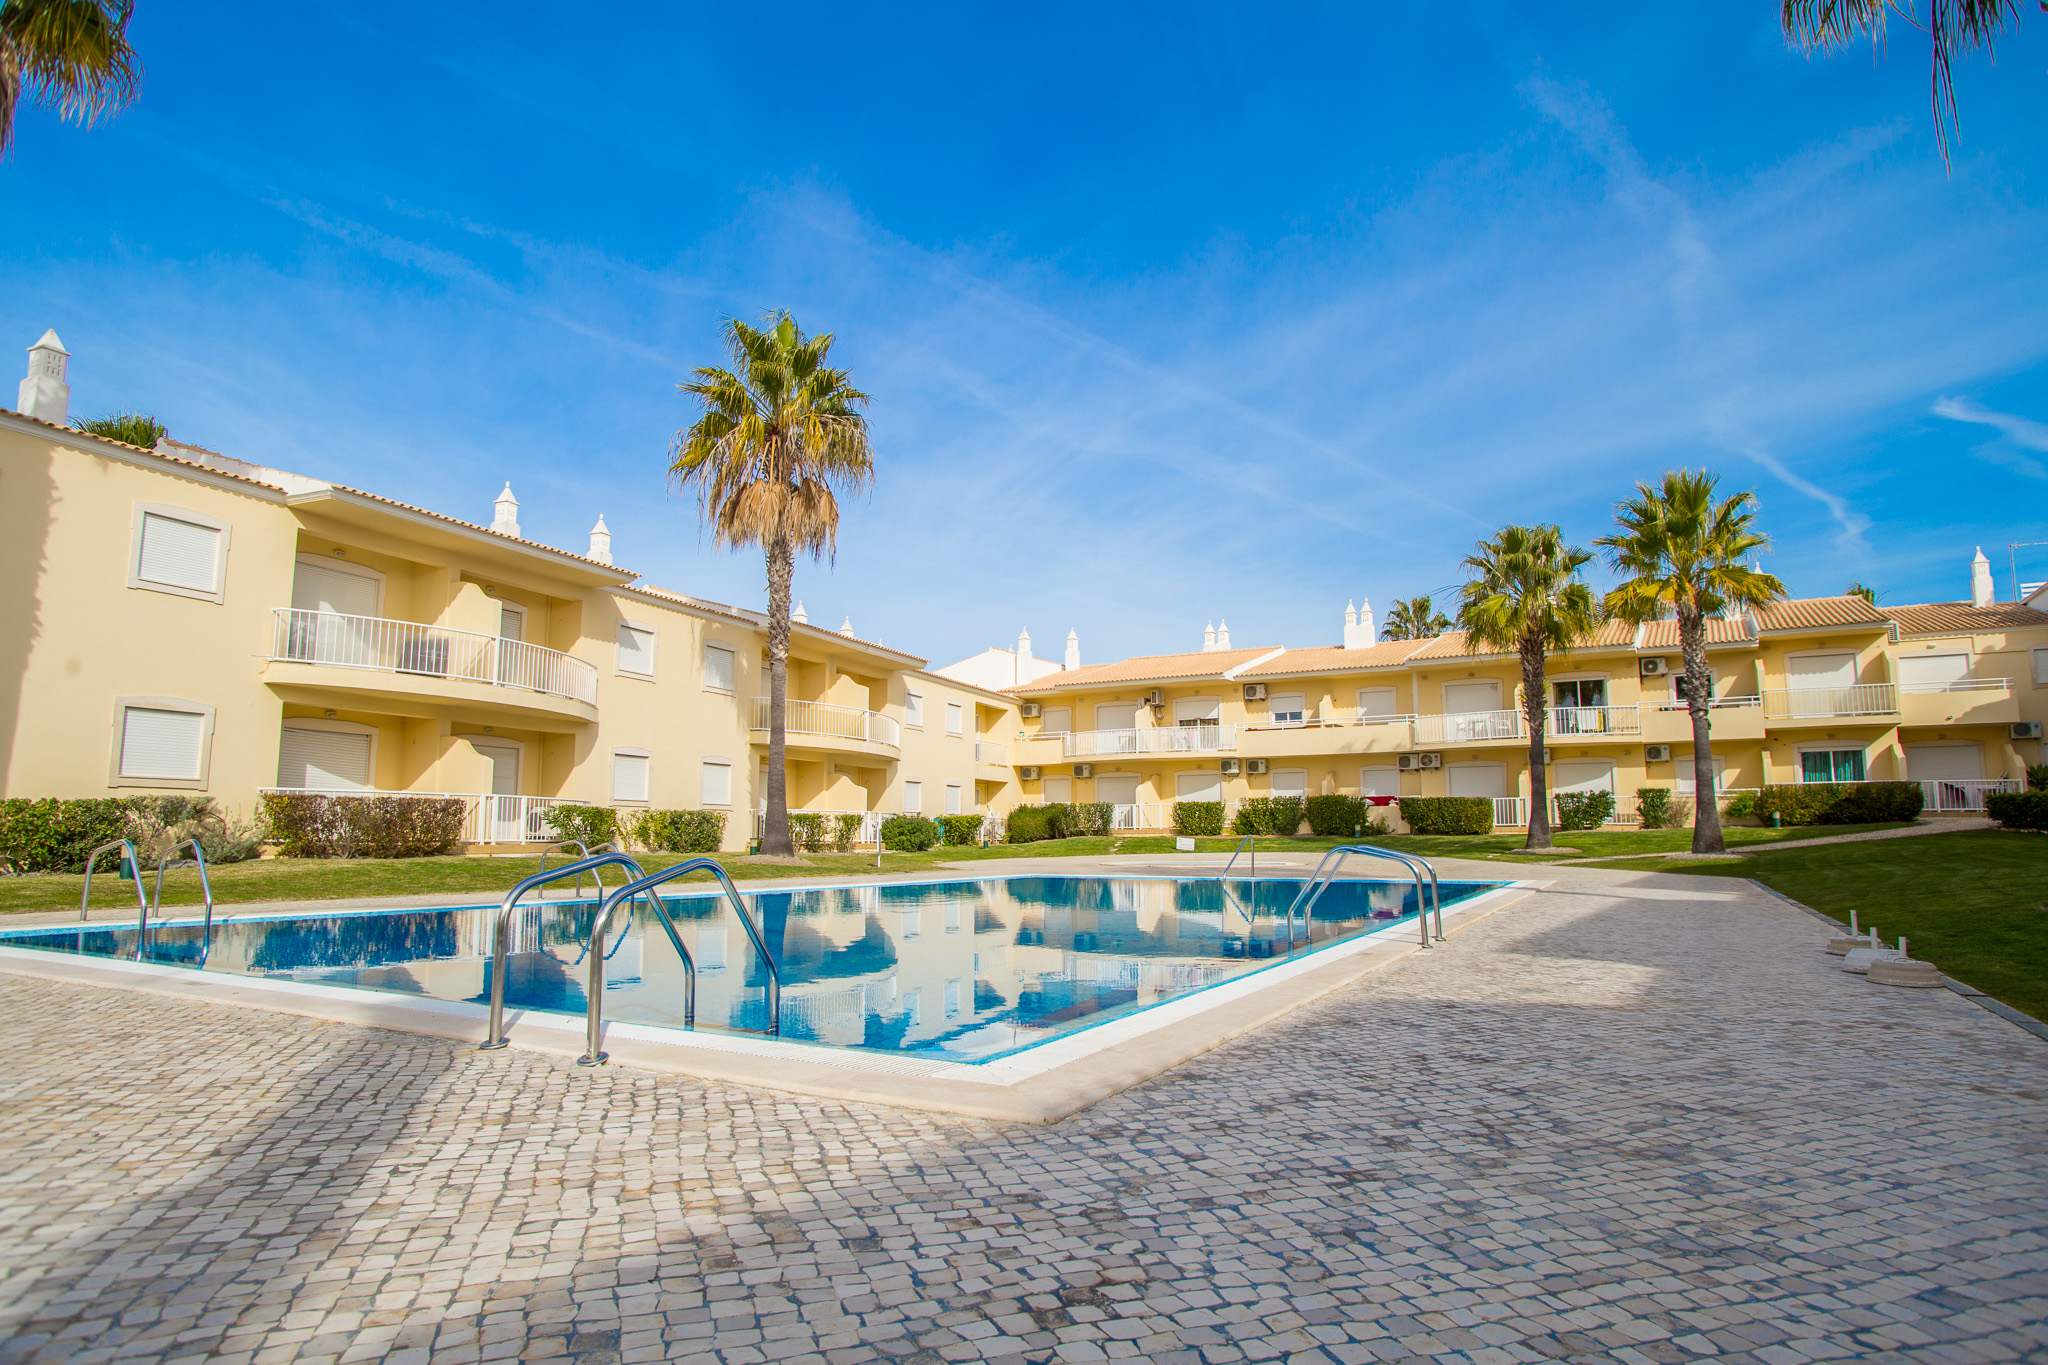 5 Vacation Rentals In Albufeira For An Amazing Family Holiday. Where To Stay In Algarve. Algarve Holidays. // WarmRental